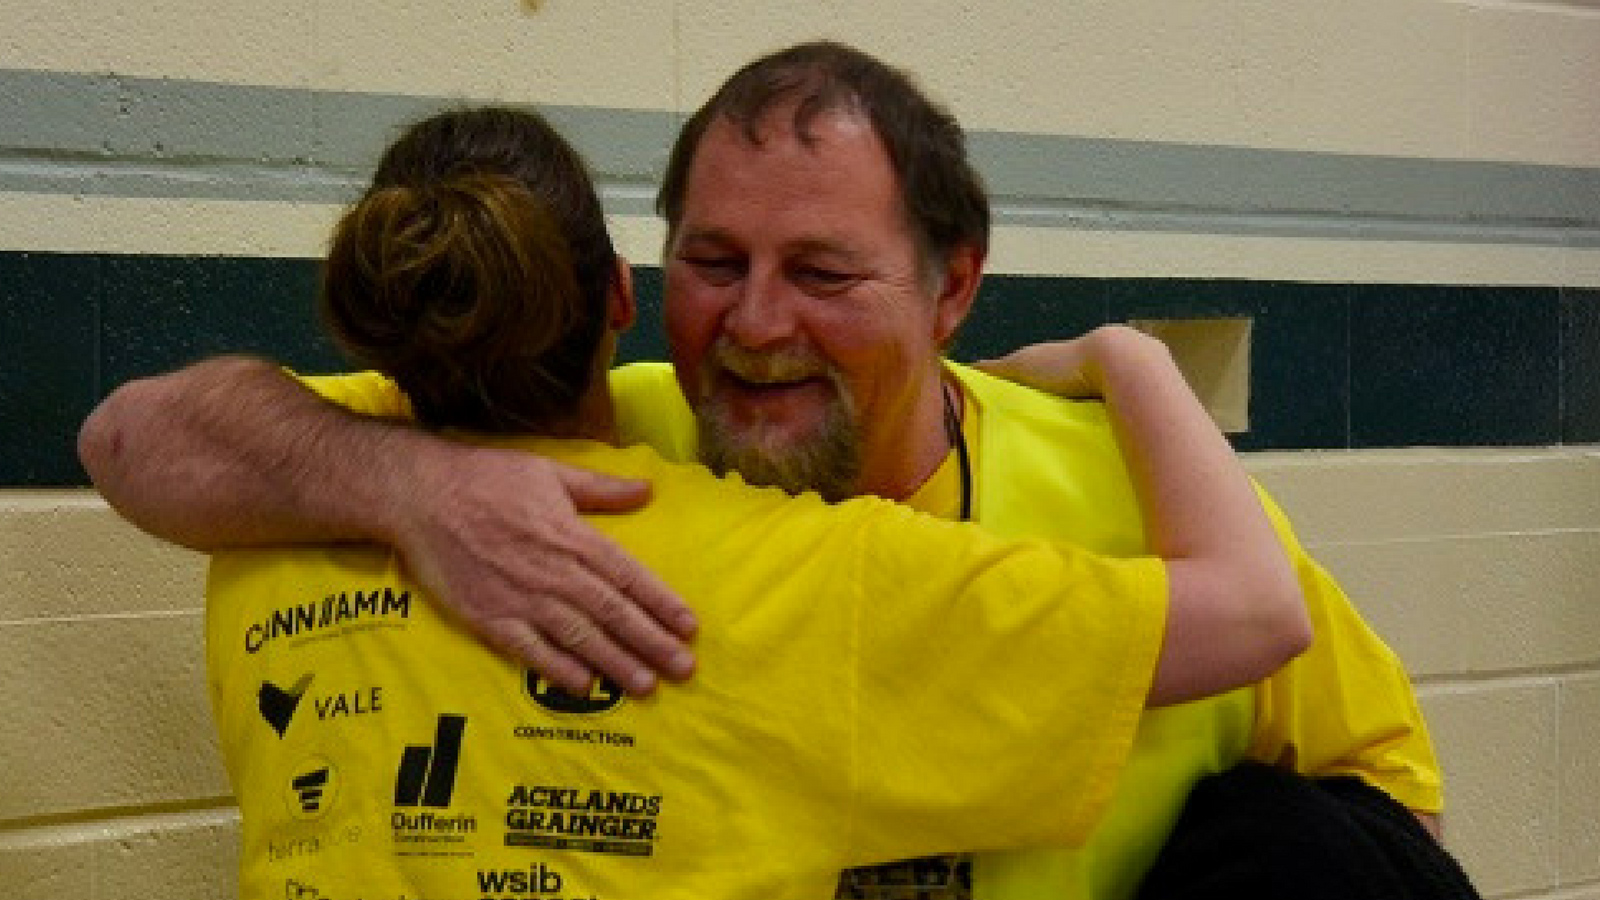 smiling man hugging a woman